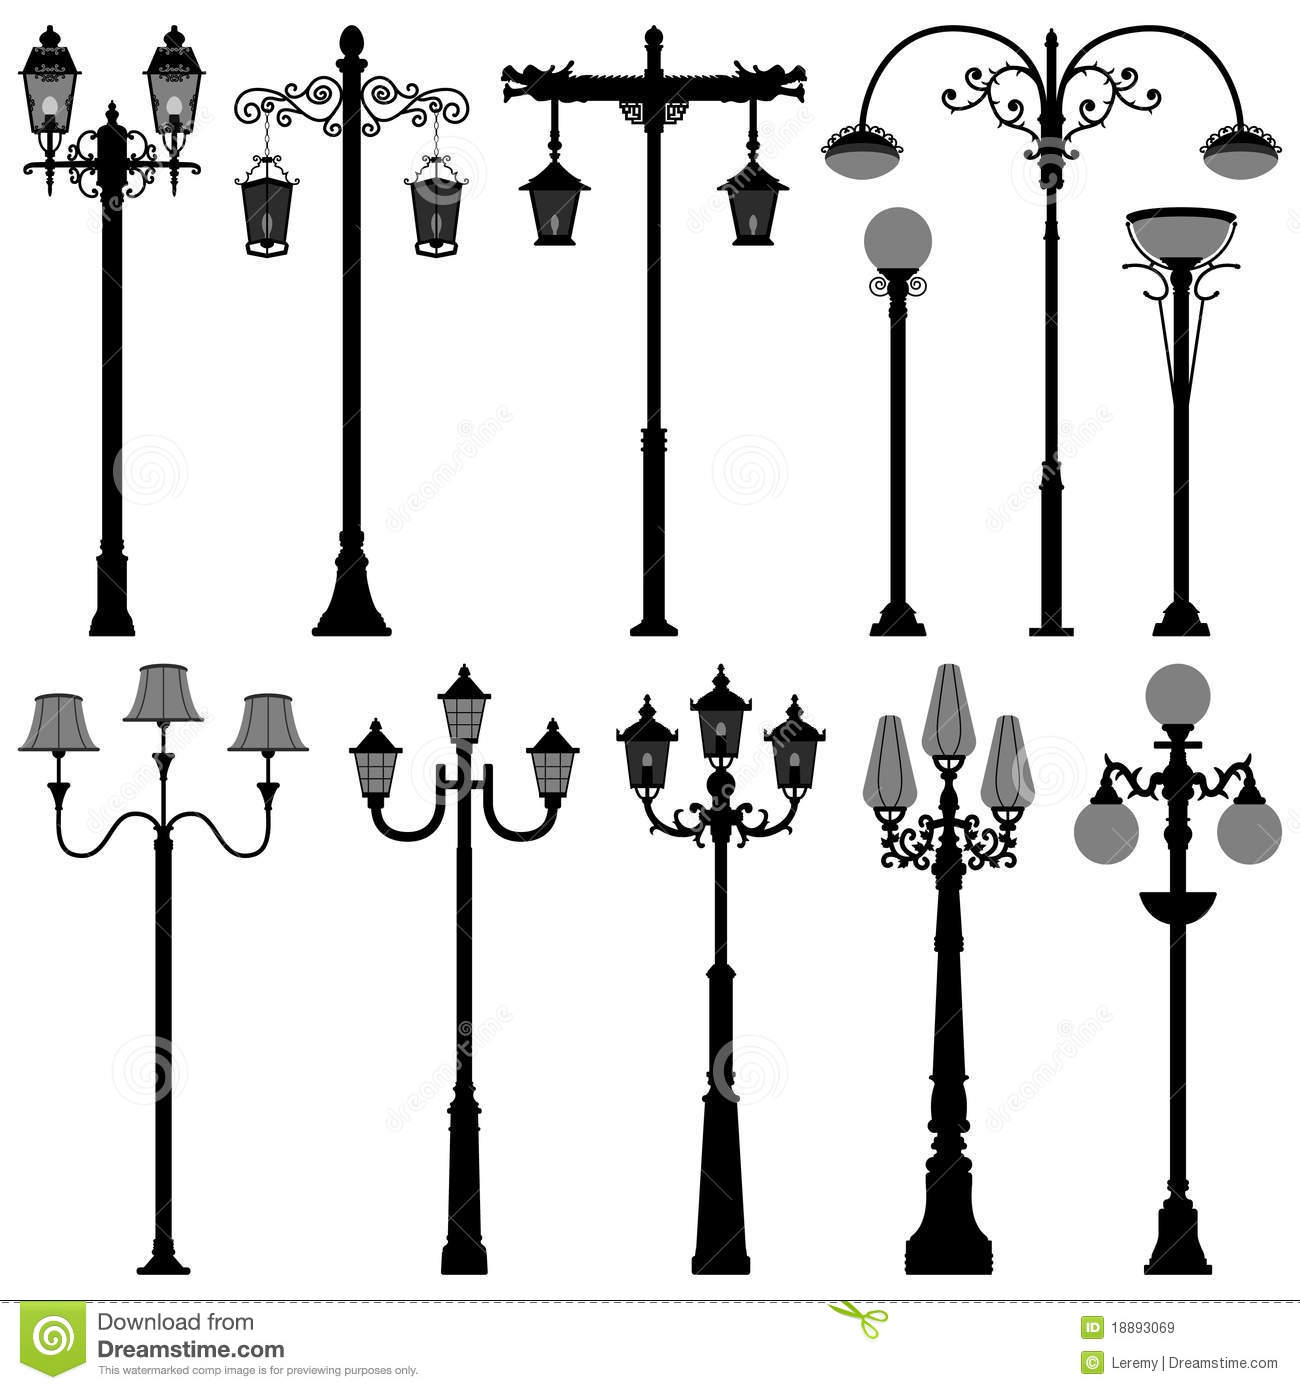 Lamp Post Lamppost Street PoleLight Royalty Free Stock